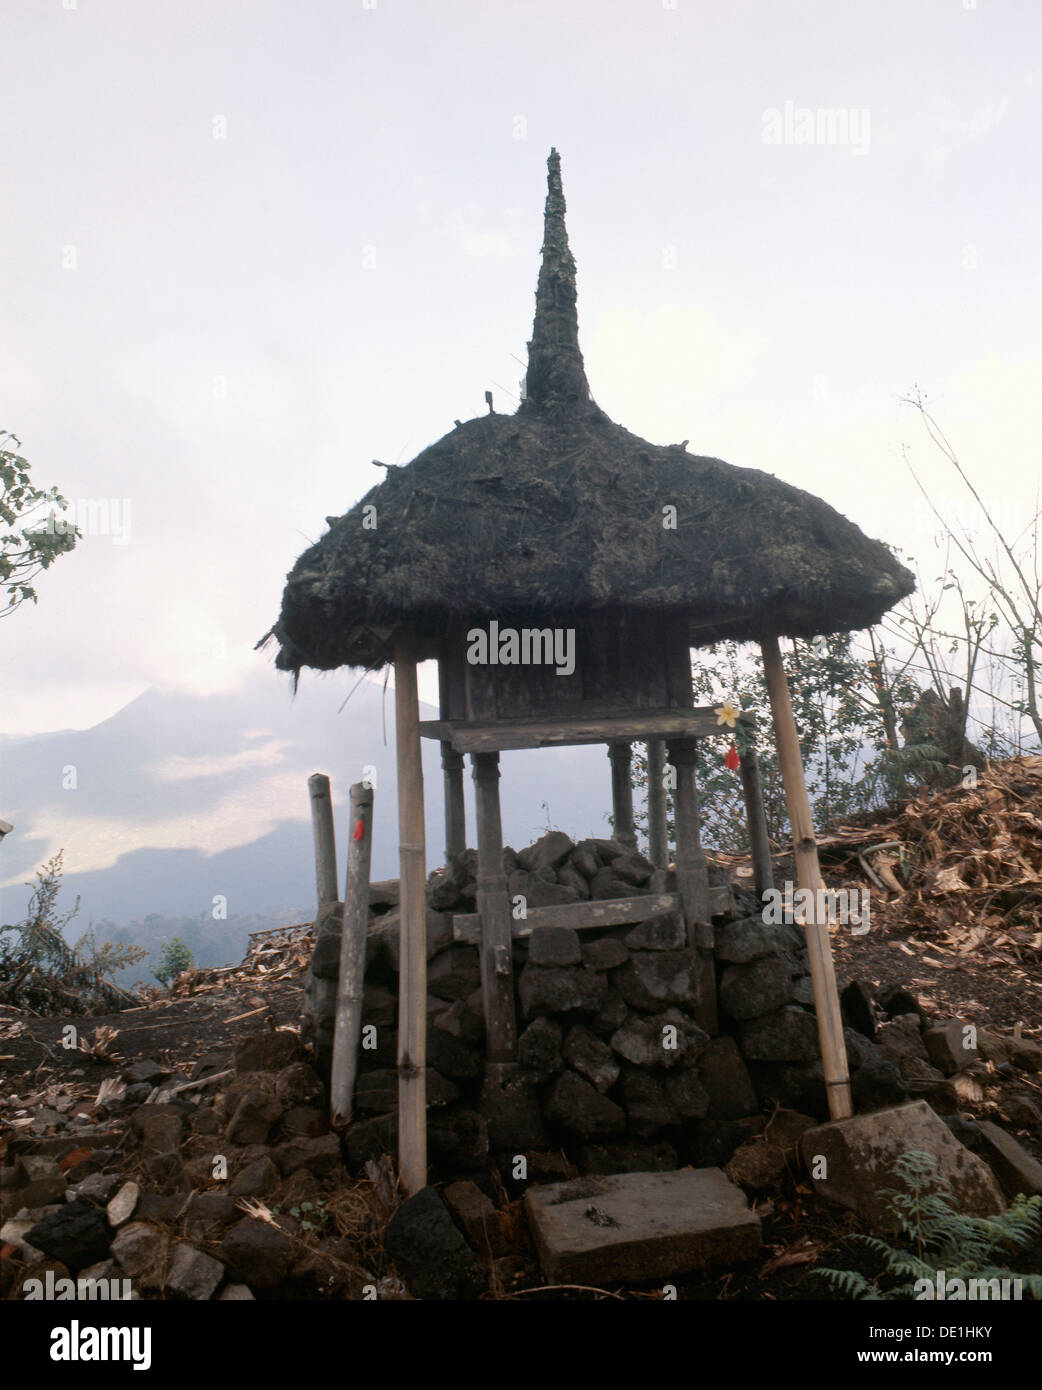 A tiny shrine, its' roof recalling the cosmic mountain, standing before the volcano Gunung Batur. - Stock Image